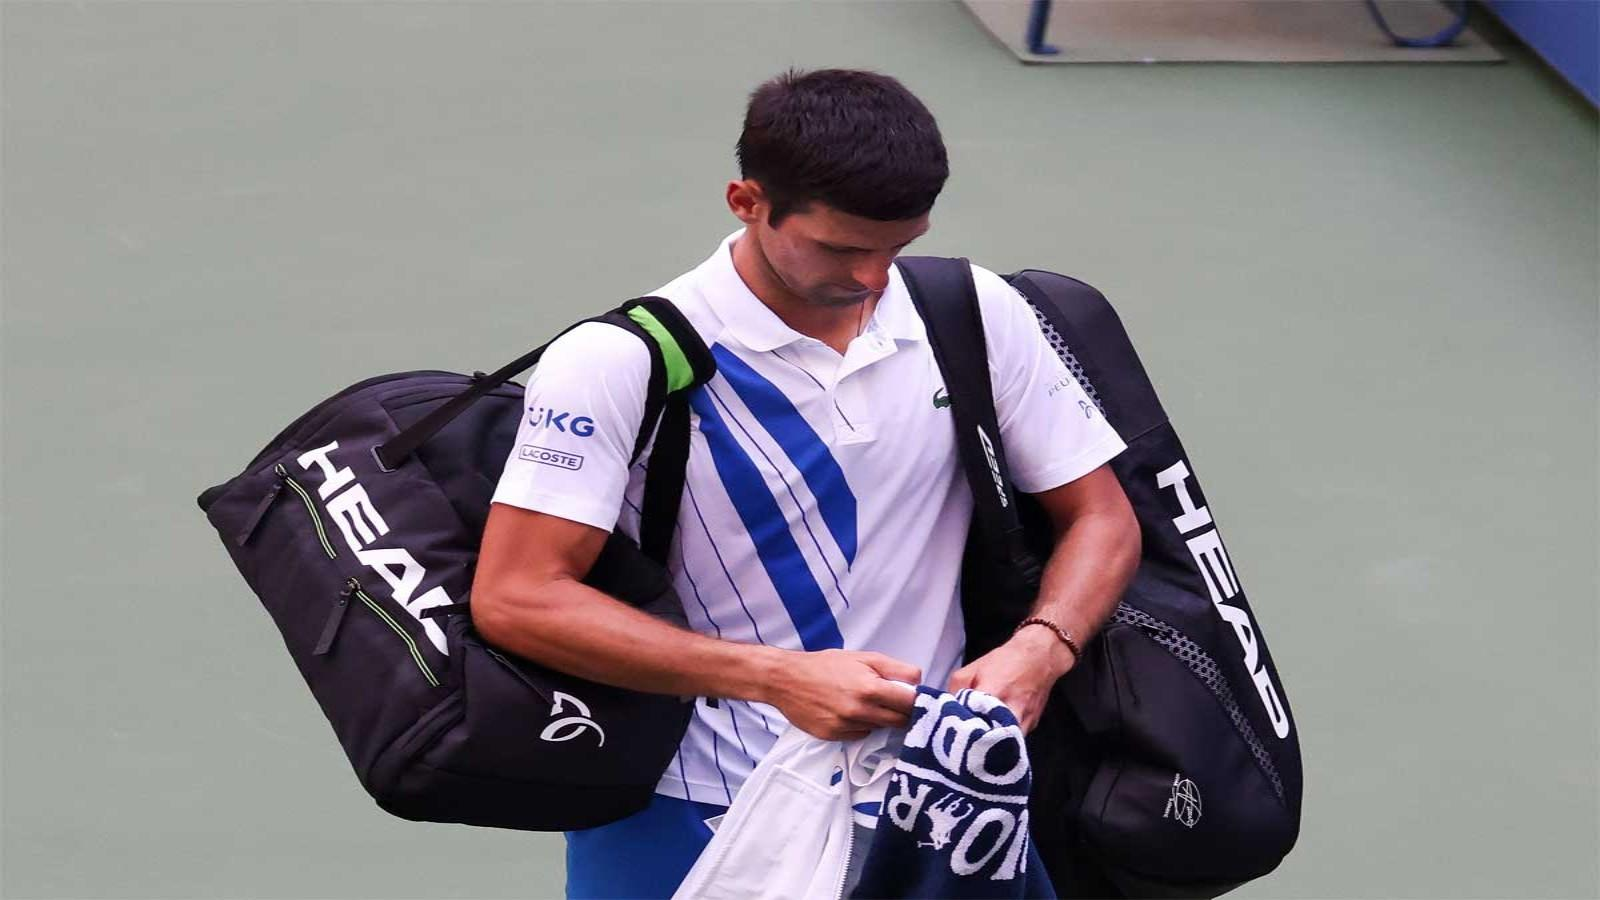 novak-djokovic-hits-official-with-ball-gets-disqualified-from-us-open